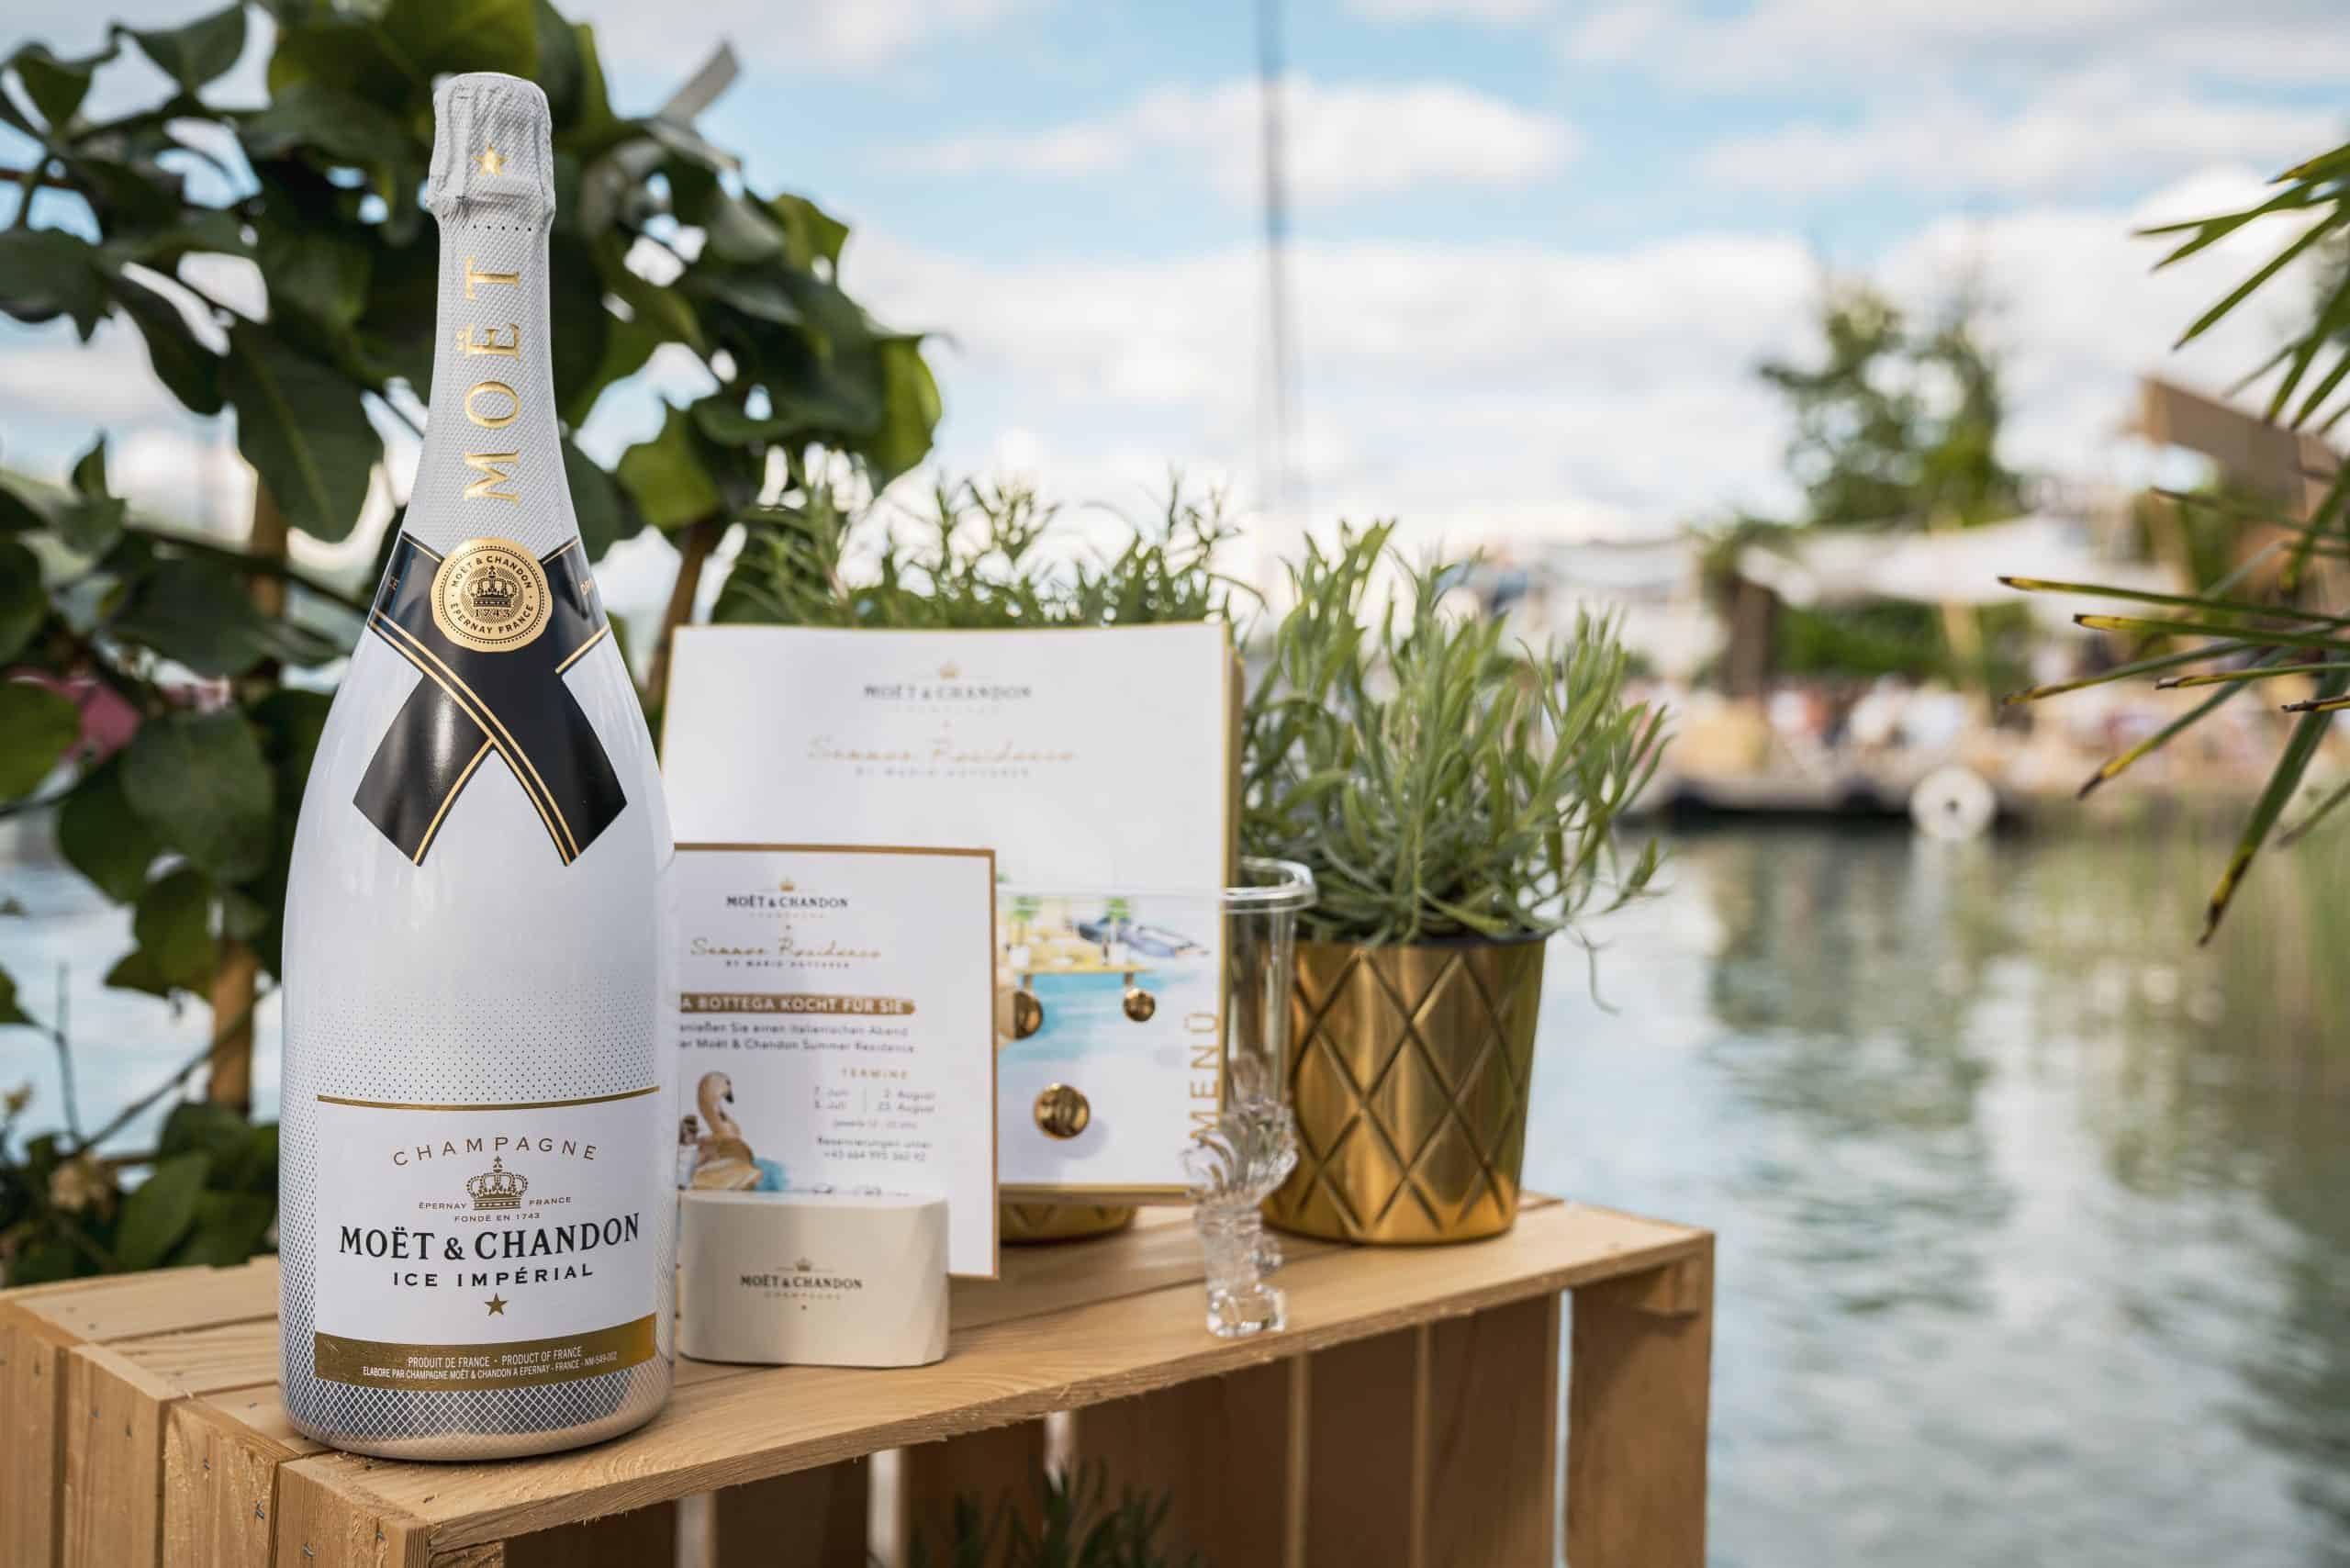 MH-Moet-Chandon-Summer-Residence-2020-06-11_026-scaled